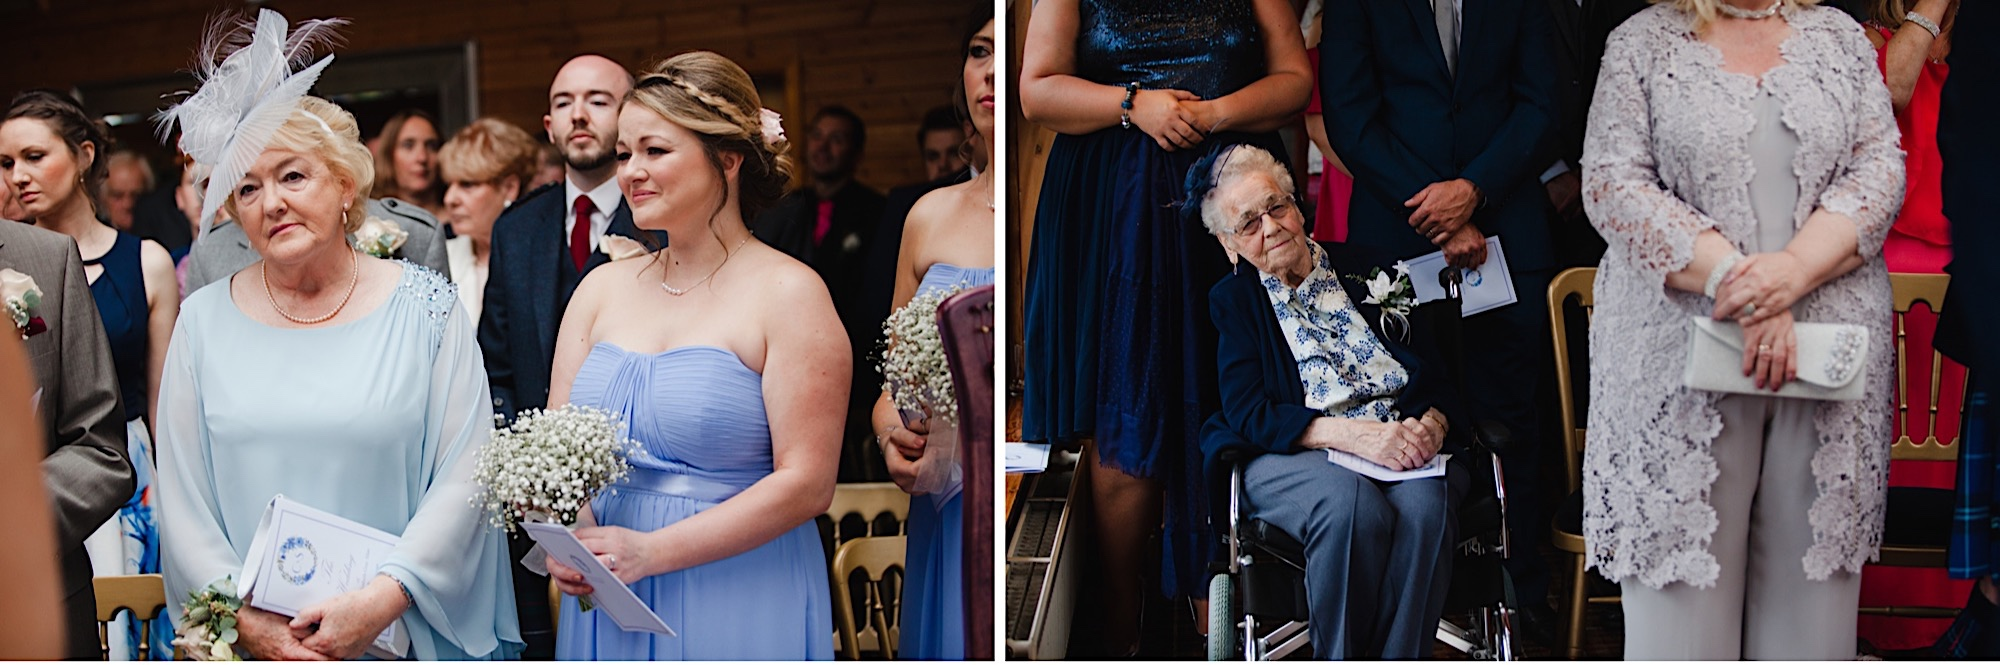 wedding guests reactions during ceremony